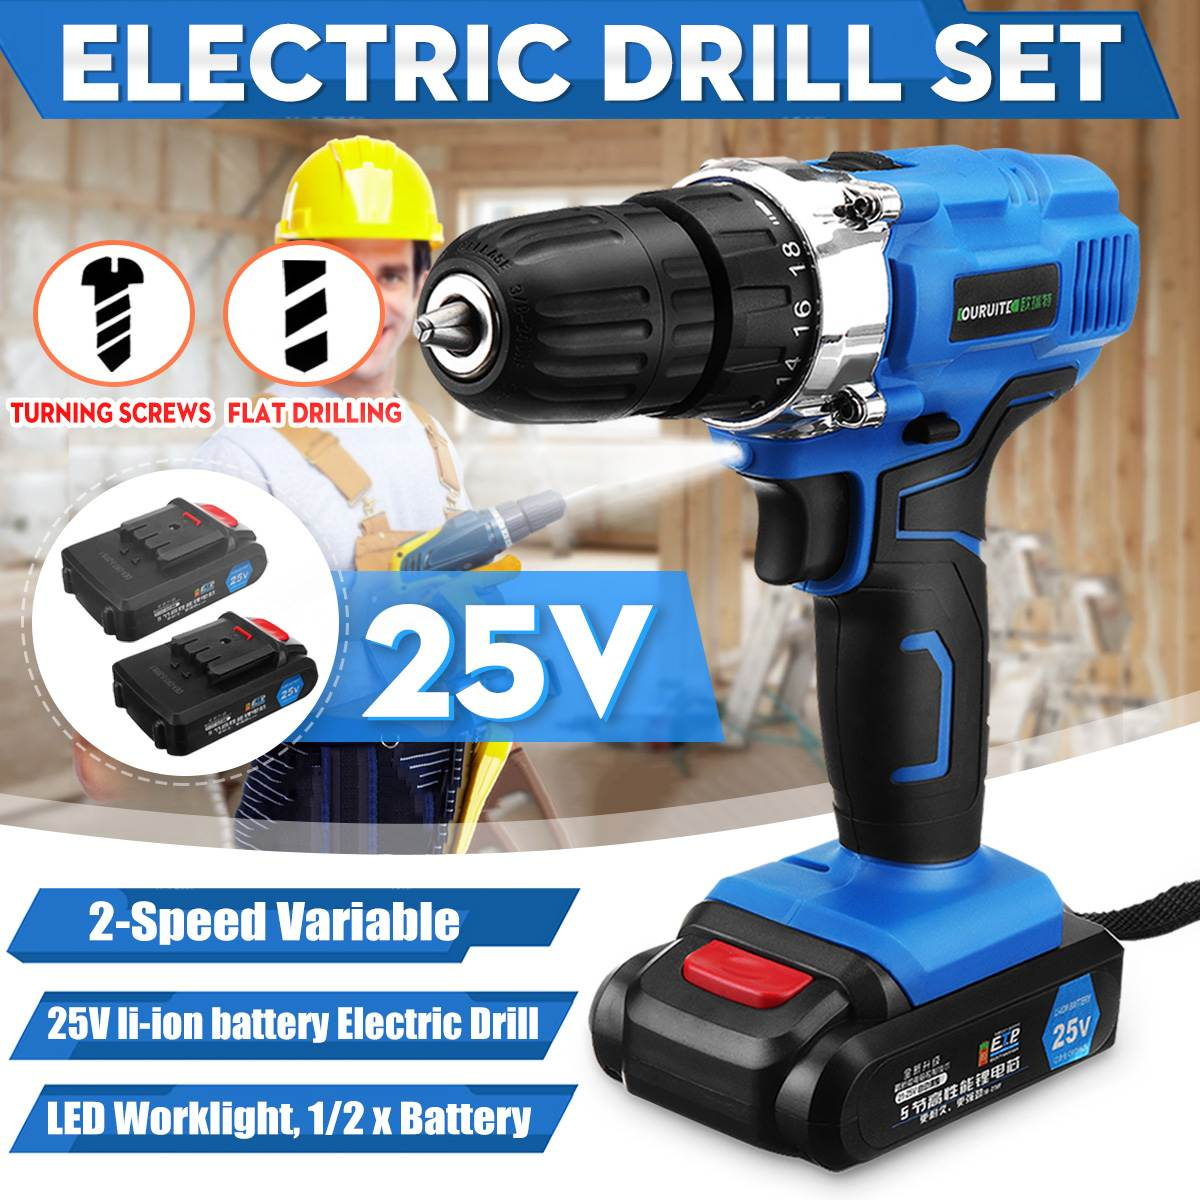 New Style 25V Impact Drill Electric Hand Drill Battery Cordless Hammer Drill Electric Screwdriver Home Diy Power Tools+ BoxNew Style 25V Impact Drill Electric Hand Drill Battery Cordless Hammer Drill Electric Screwdriver Home Diy Power Tools+ Box